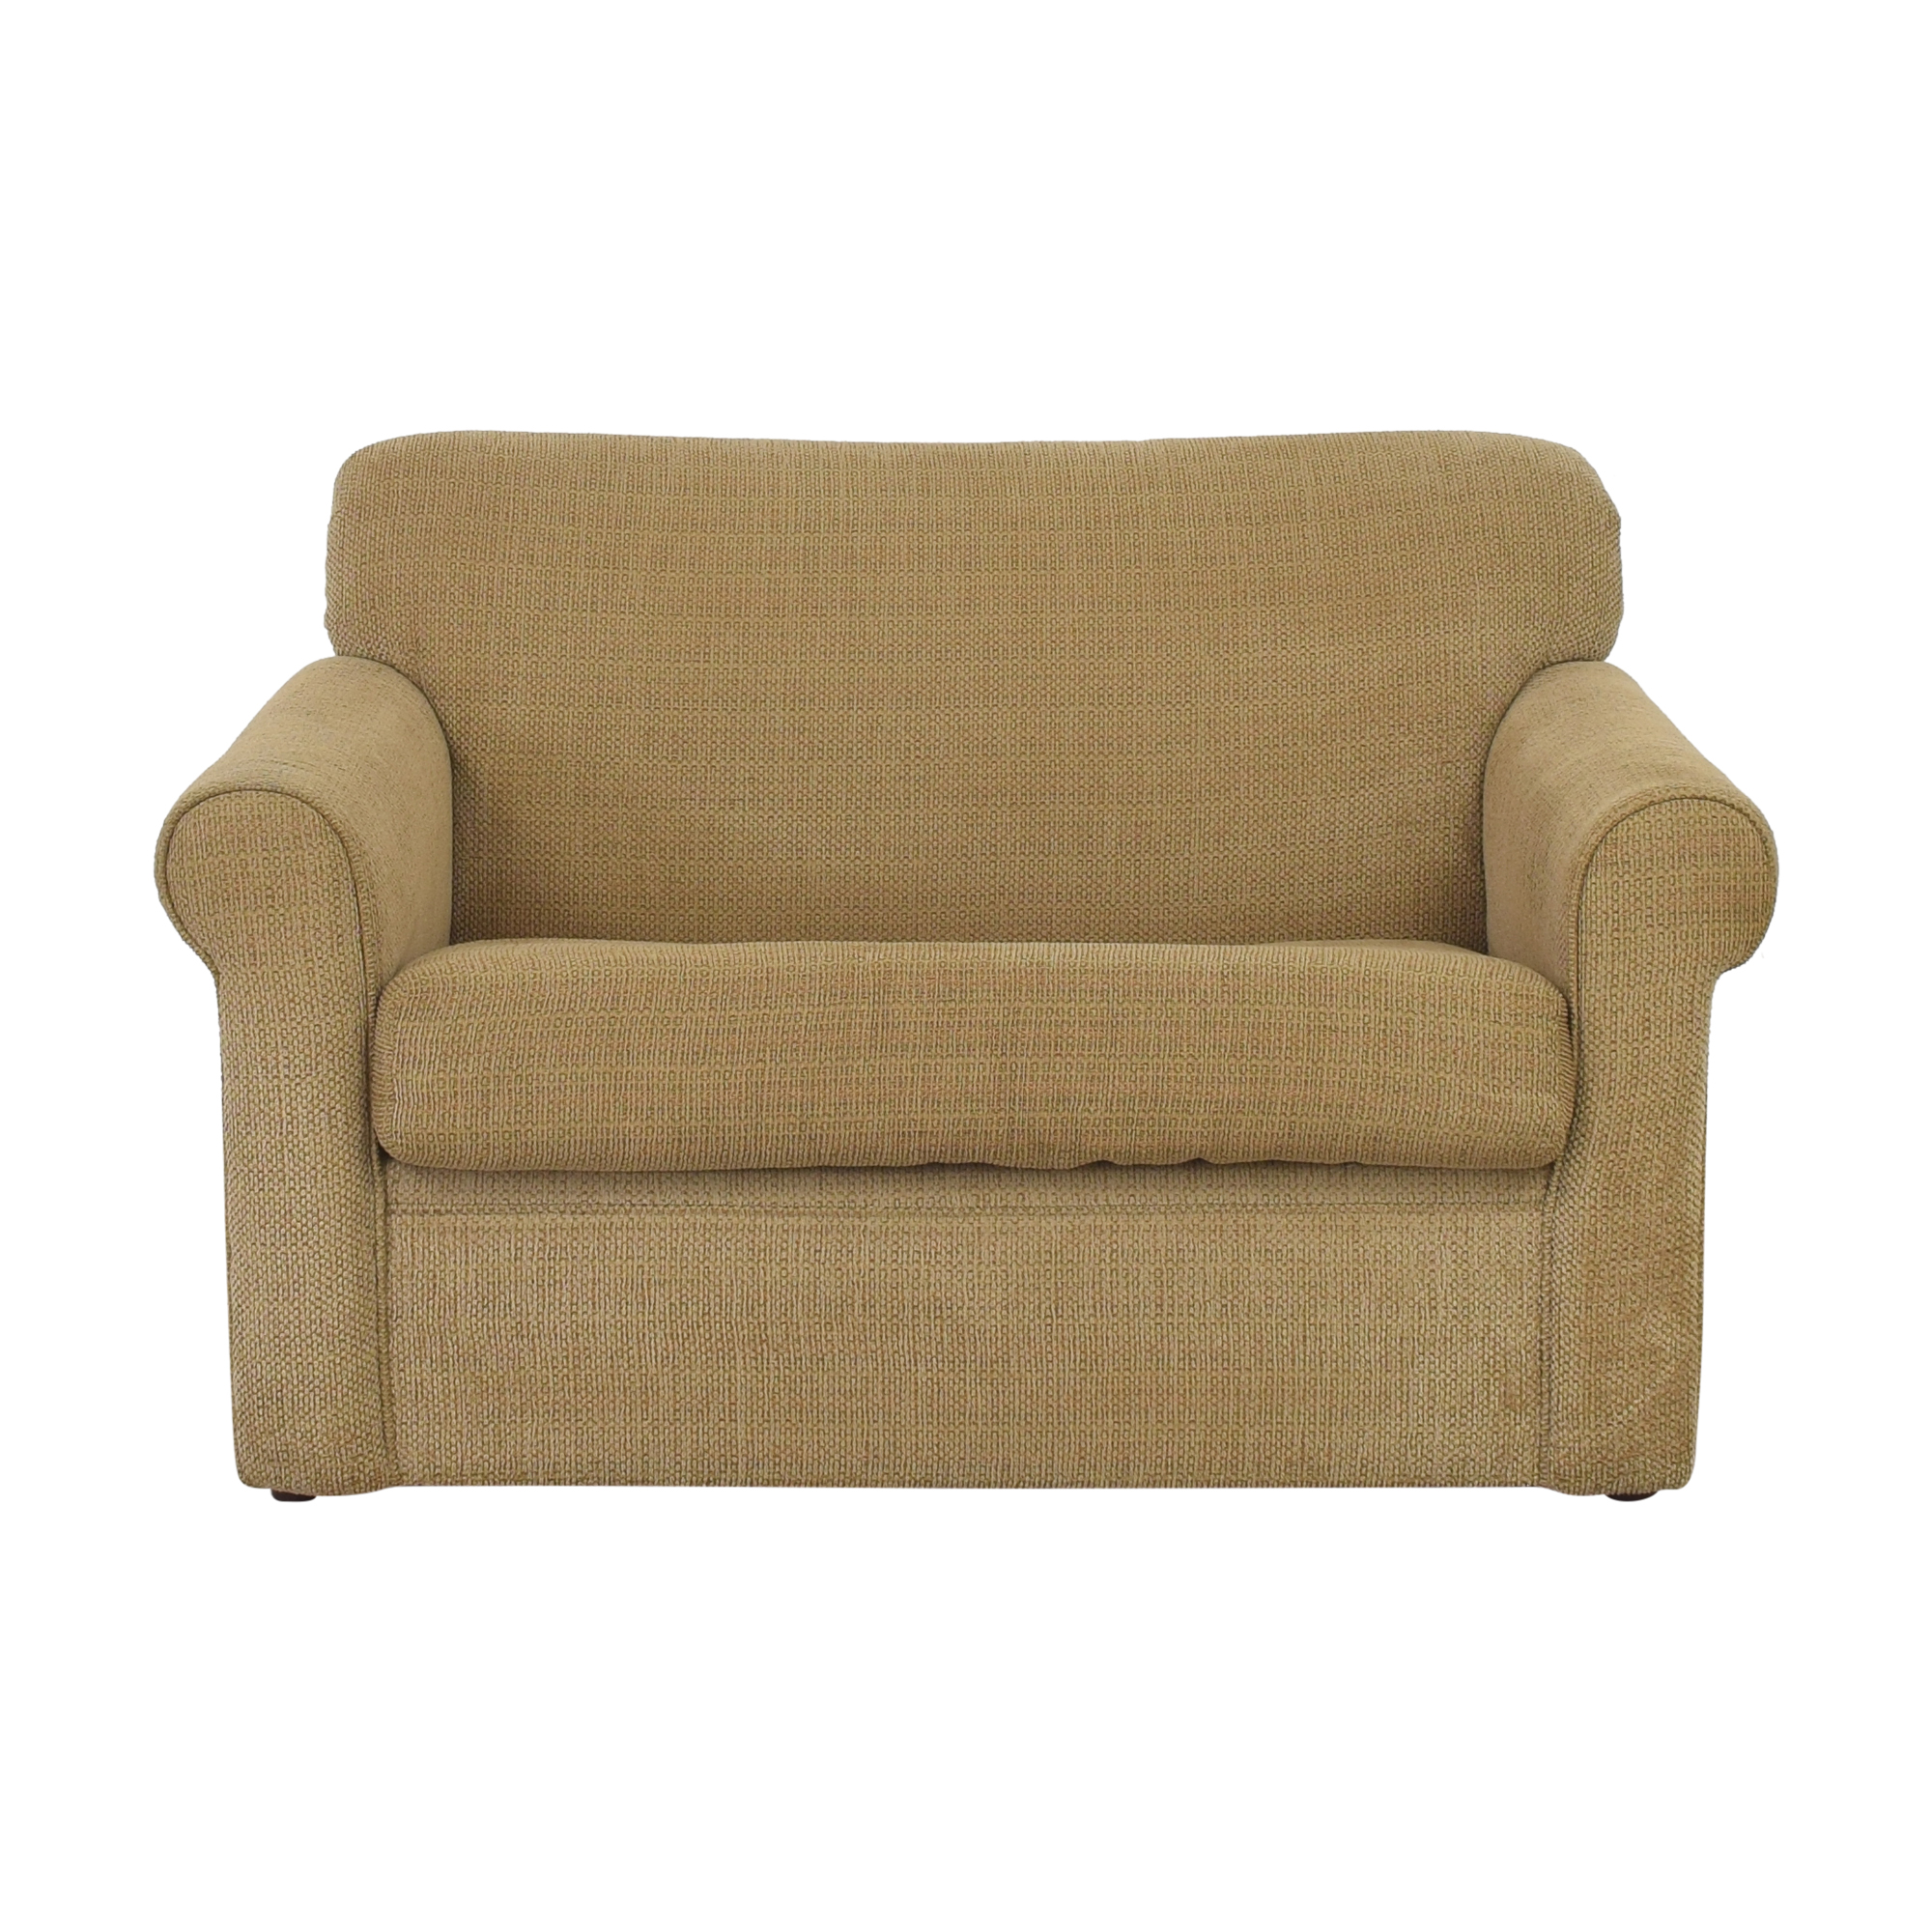 Raymour & Flanigan Raymour & Flanigan Luann Twin Sleeper Sofa for sale